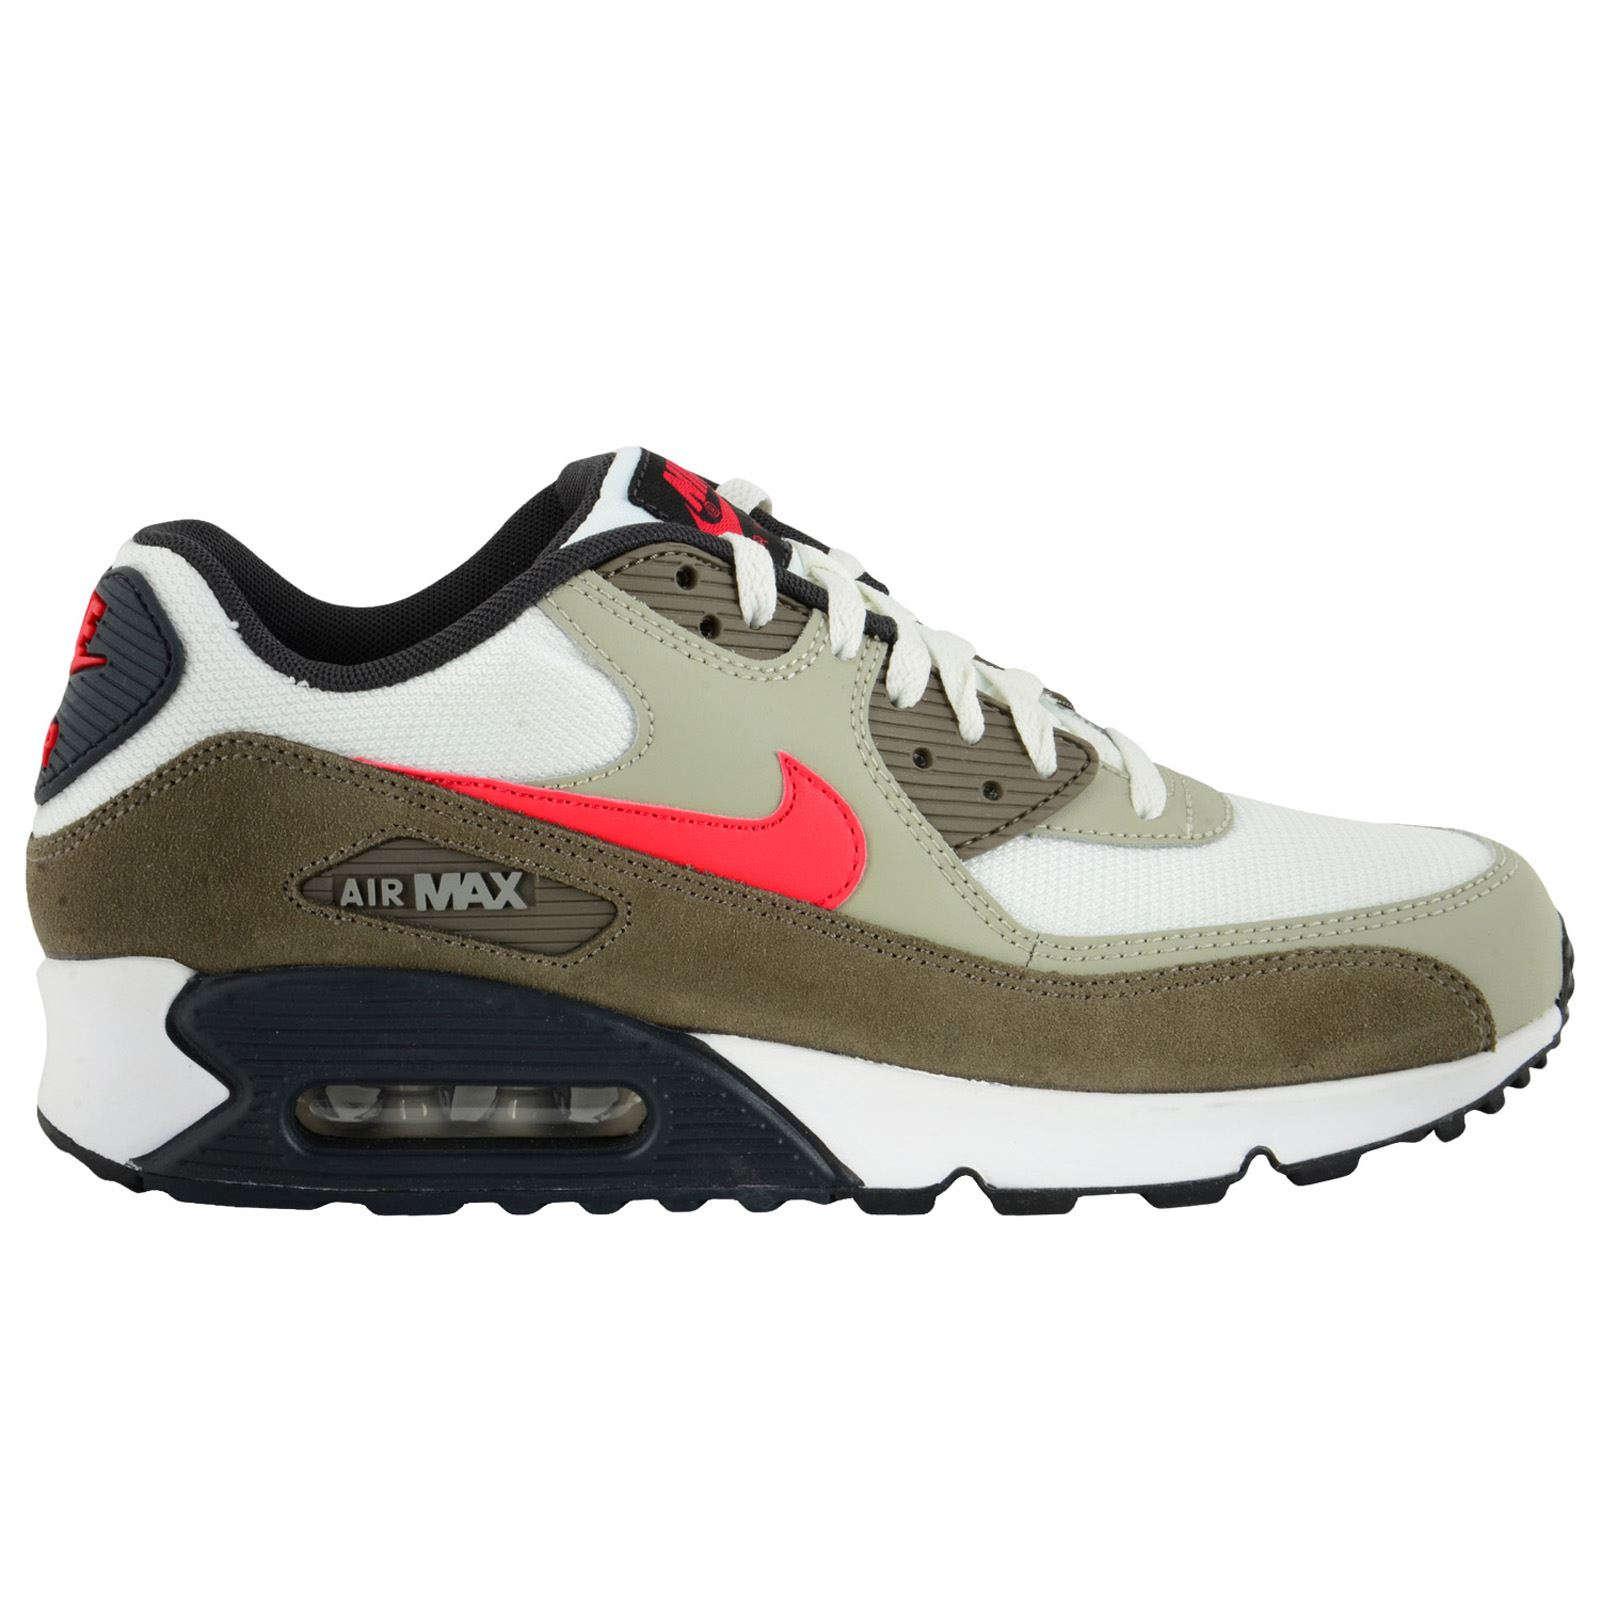 new product b2c2e b6501 qebod Nike Air Max 90 Essential Leather Mens Trainers   eBay